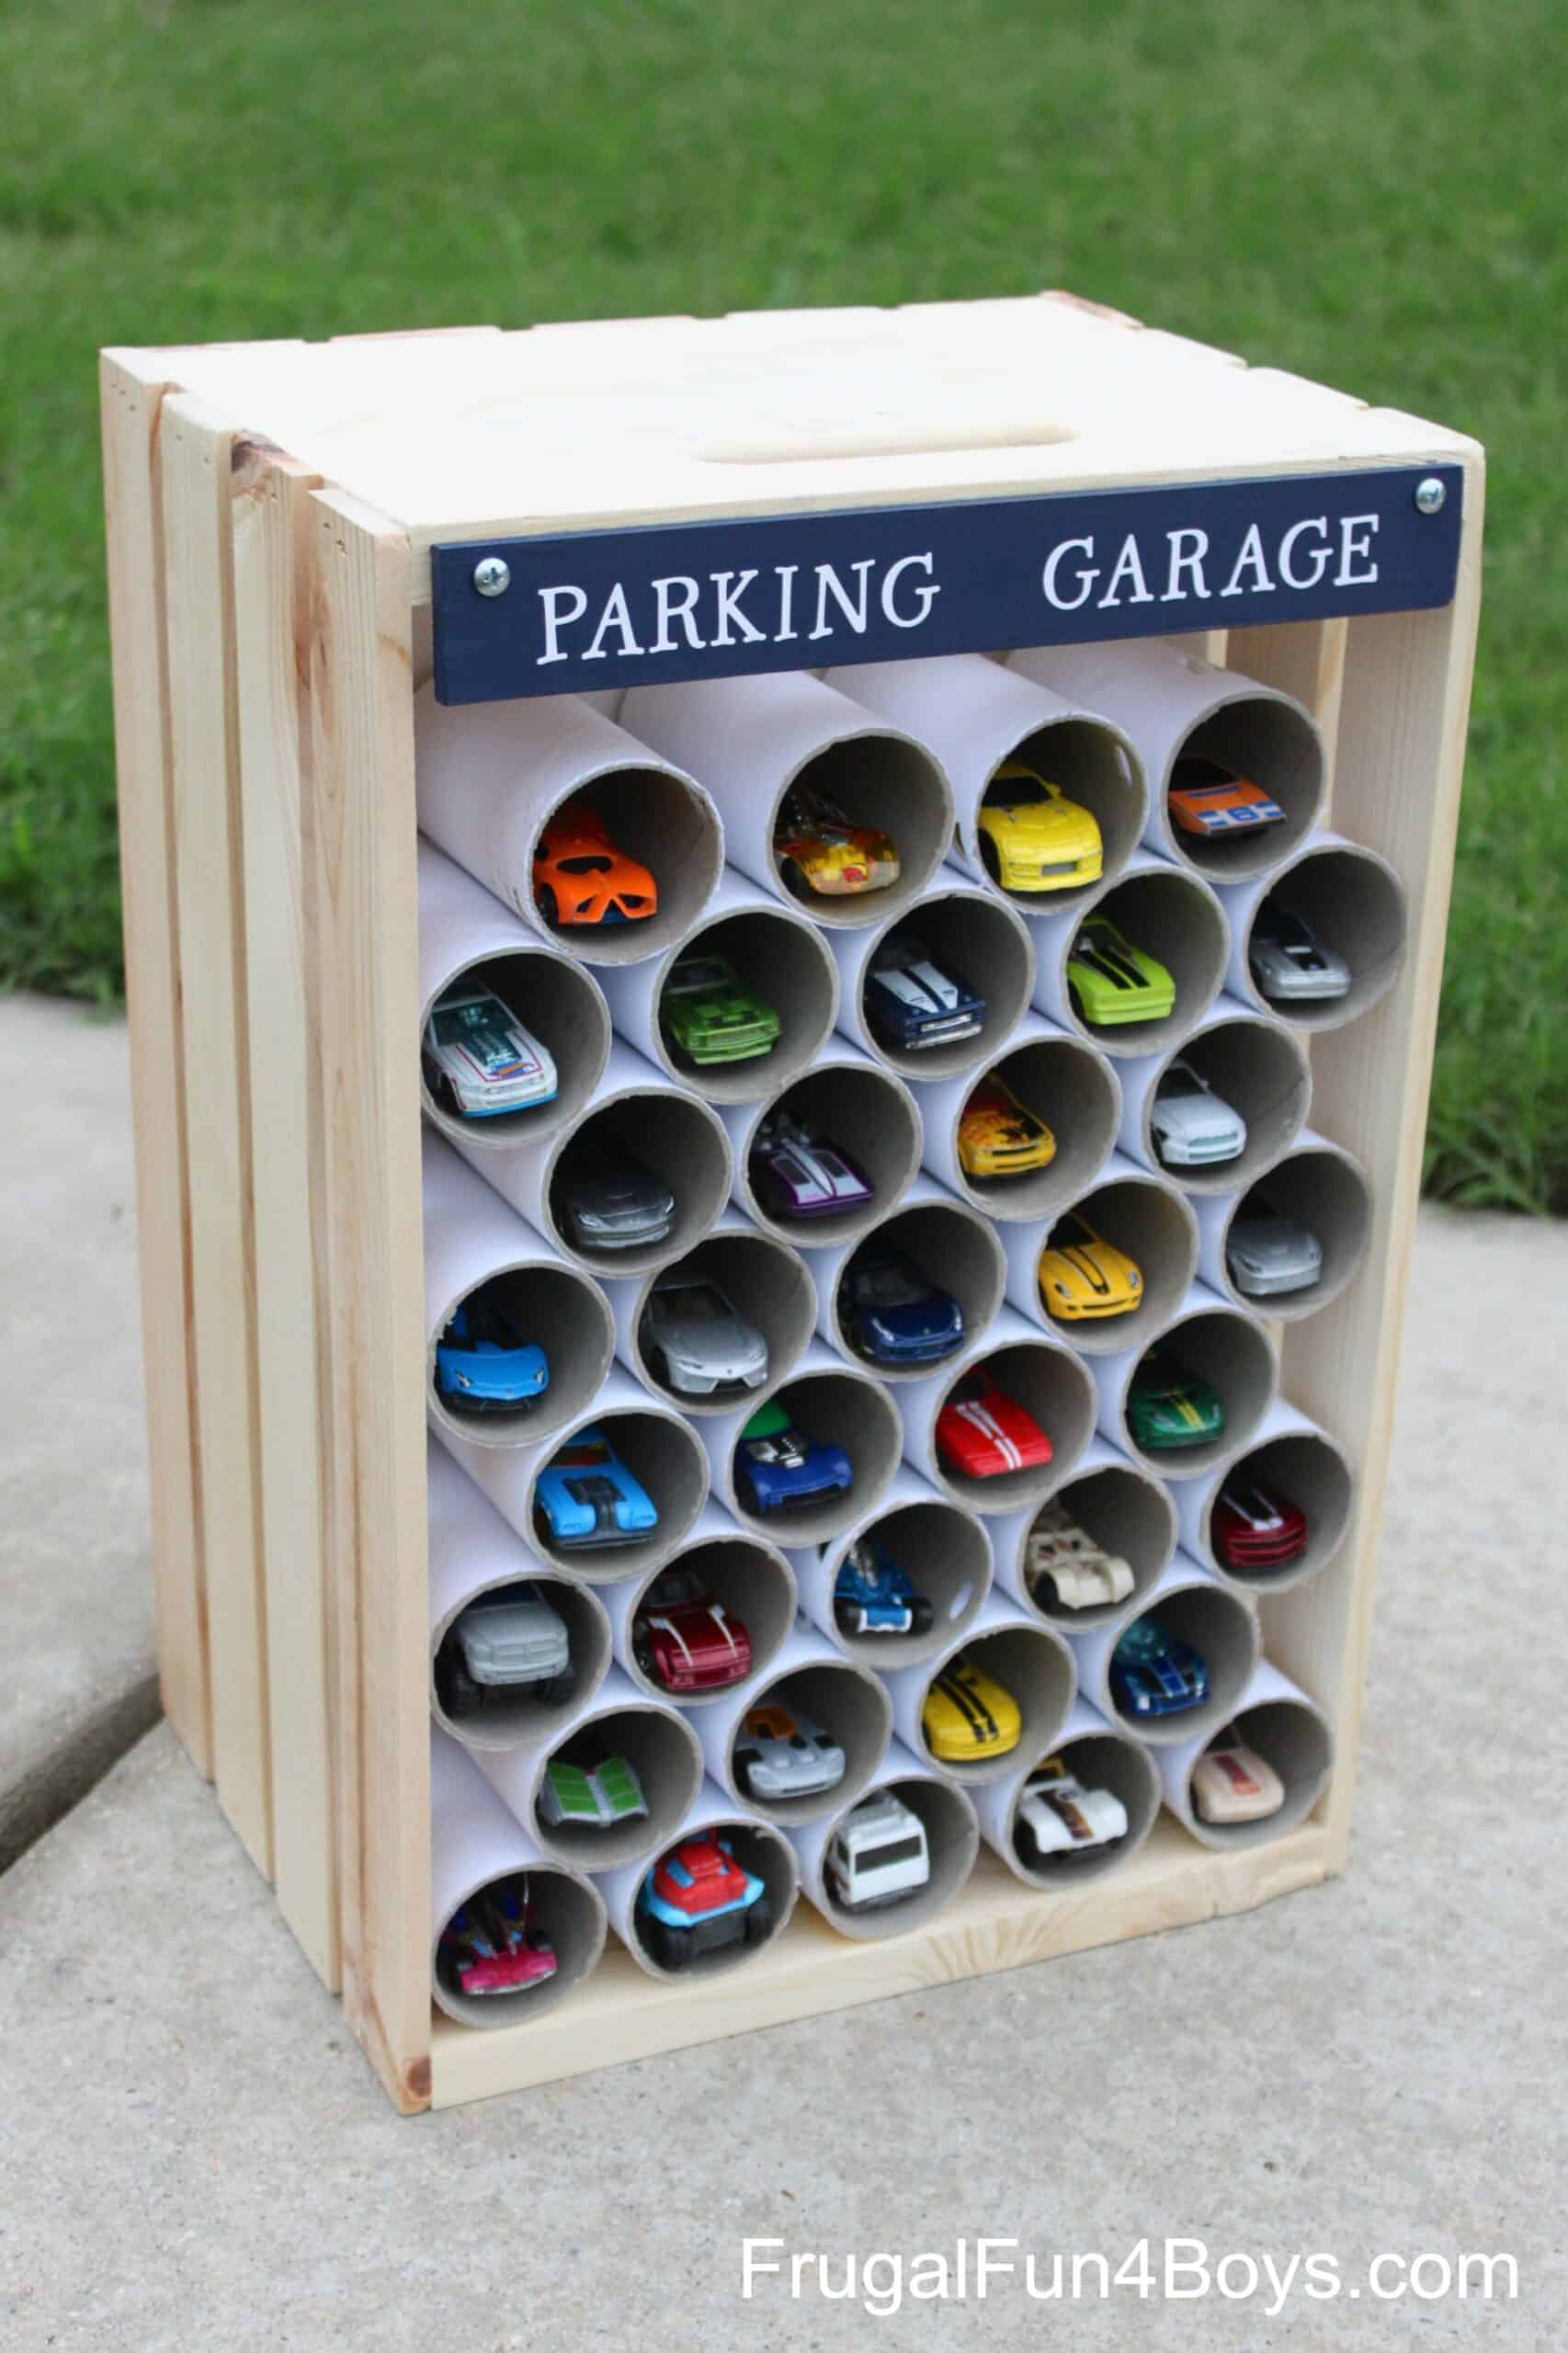 Wooden crate and cardboard pipe toy car parking garage